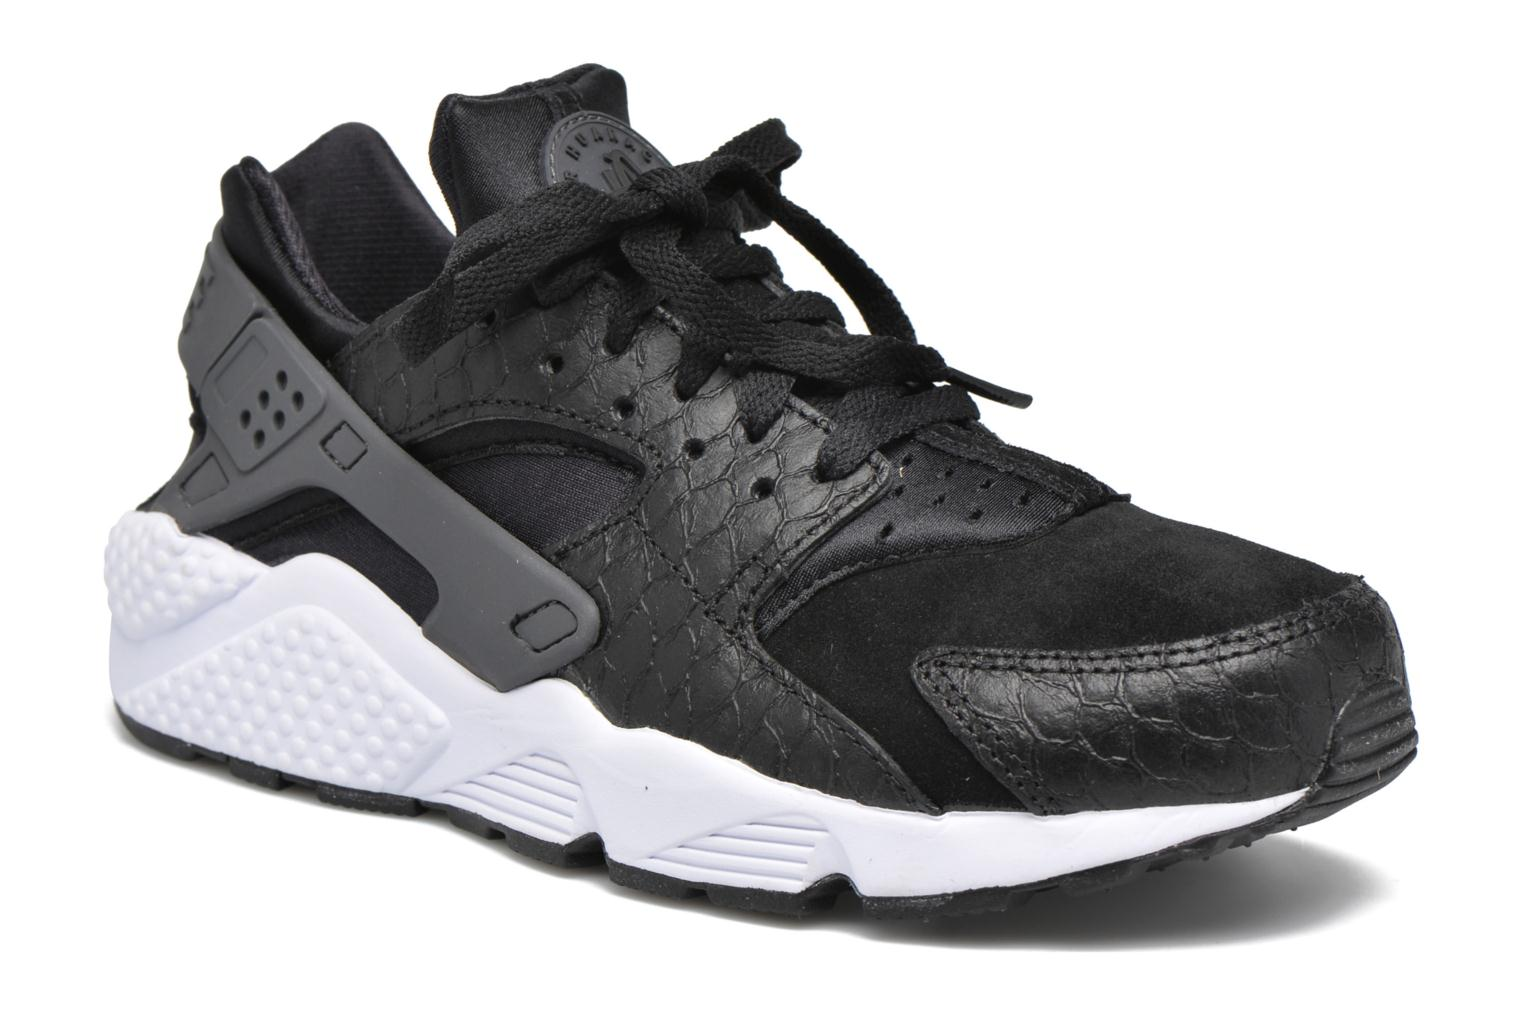 Nike Air Huarache Run Prm Black/Dark Grey-White